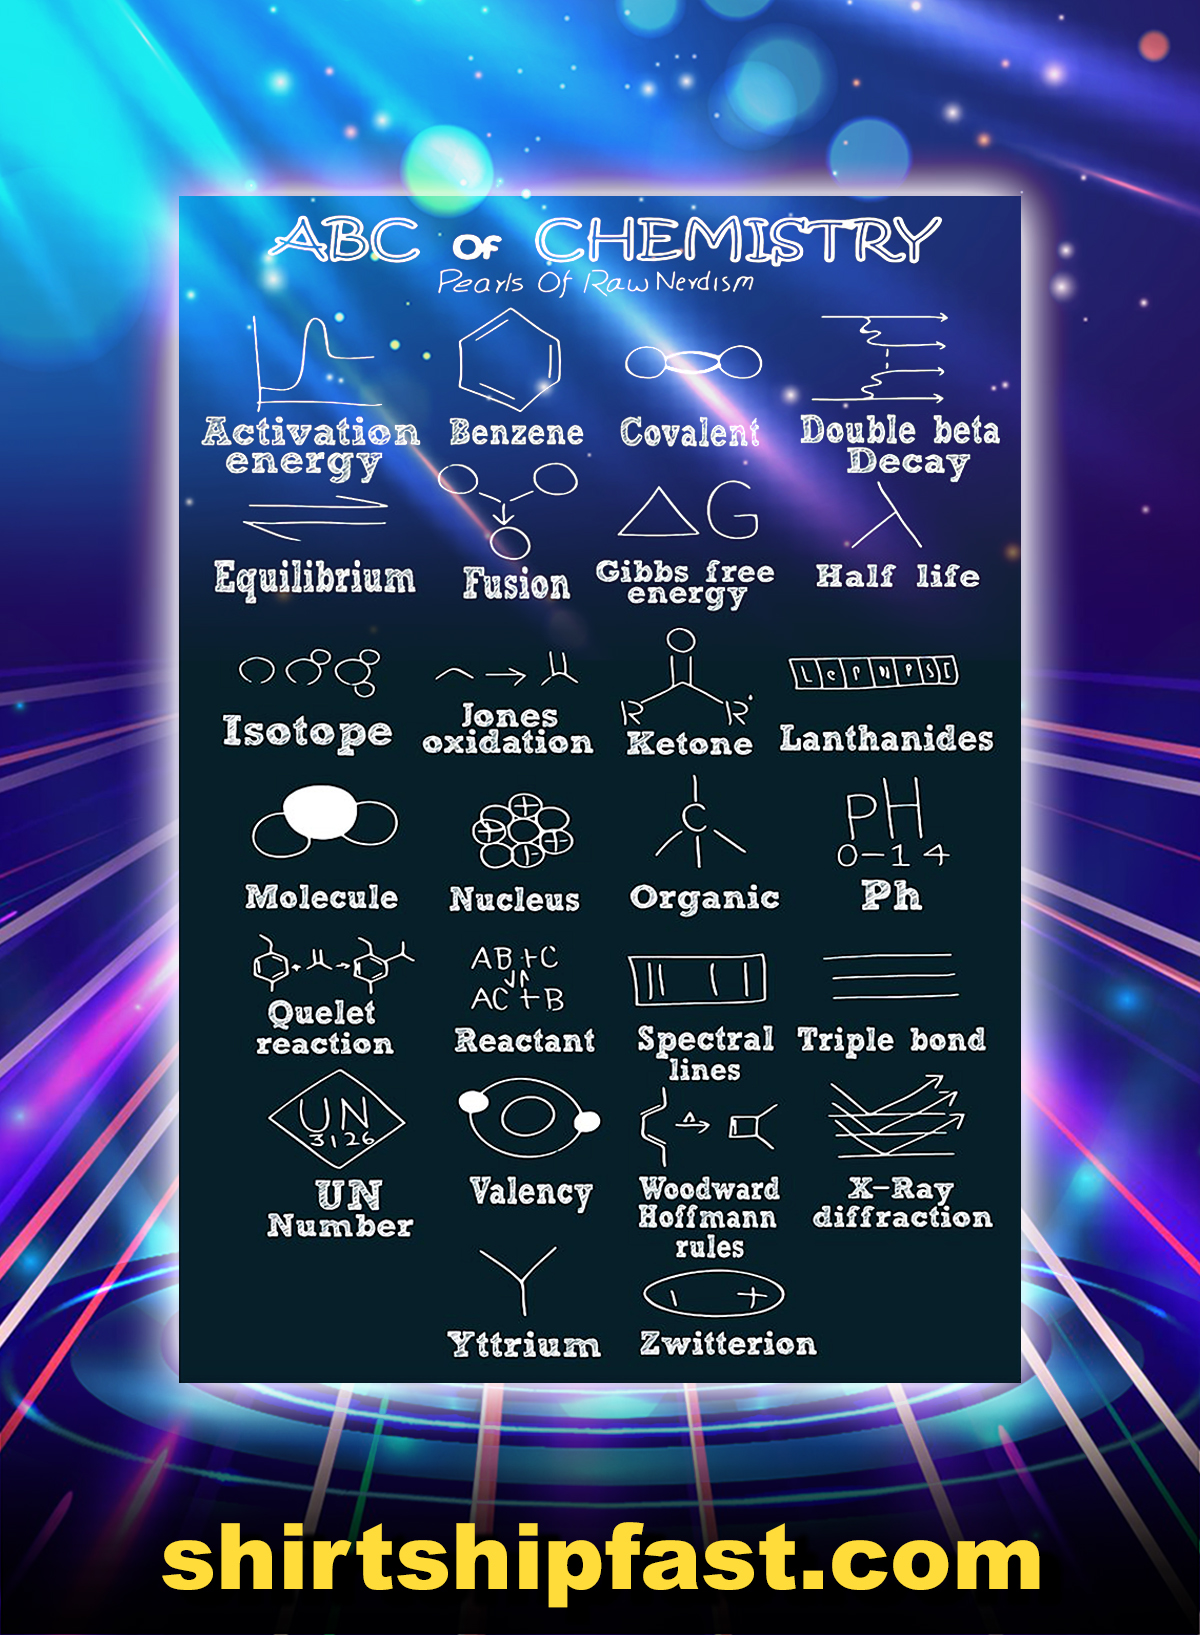 Abc of chemistry poster - A4